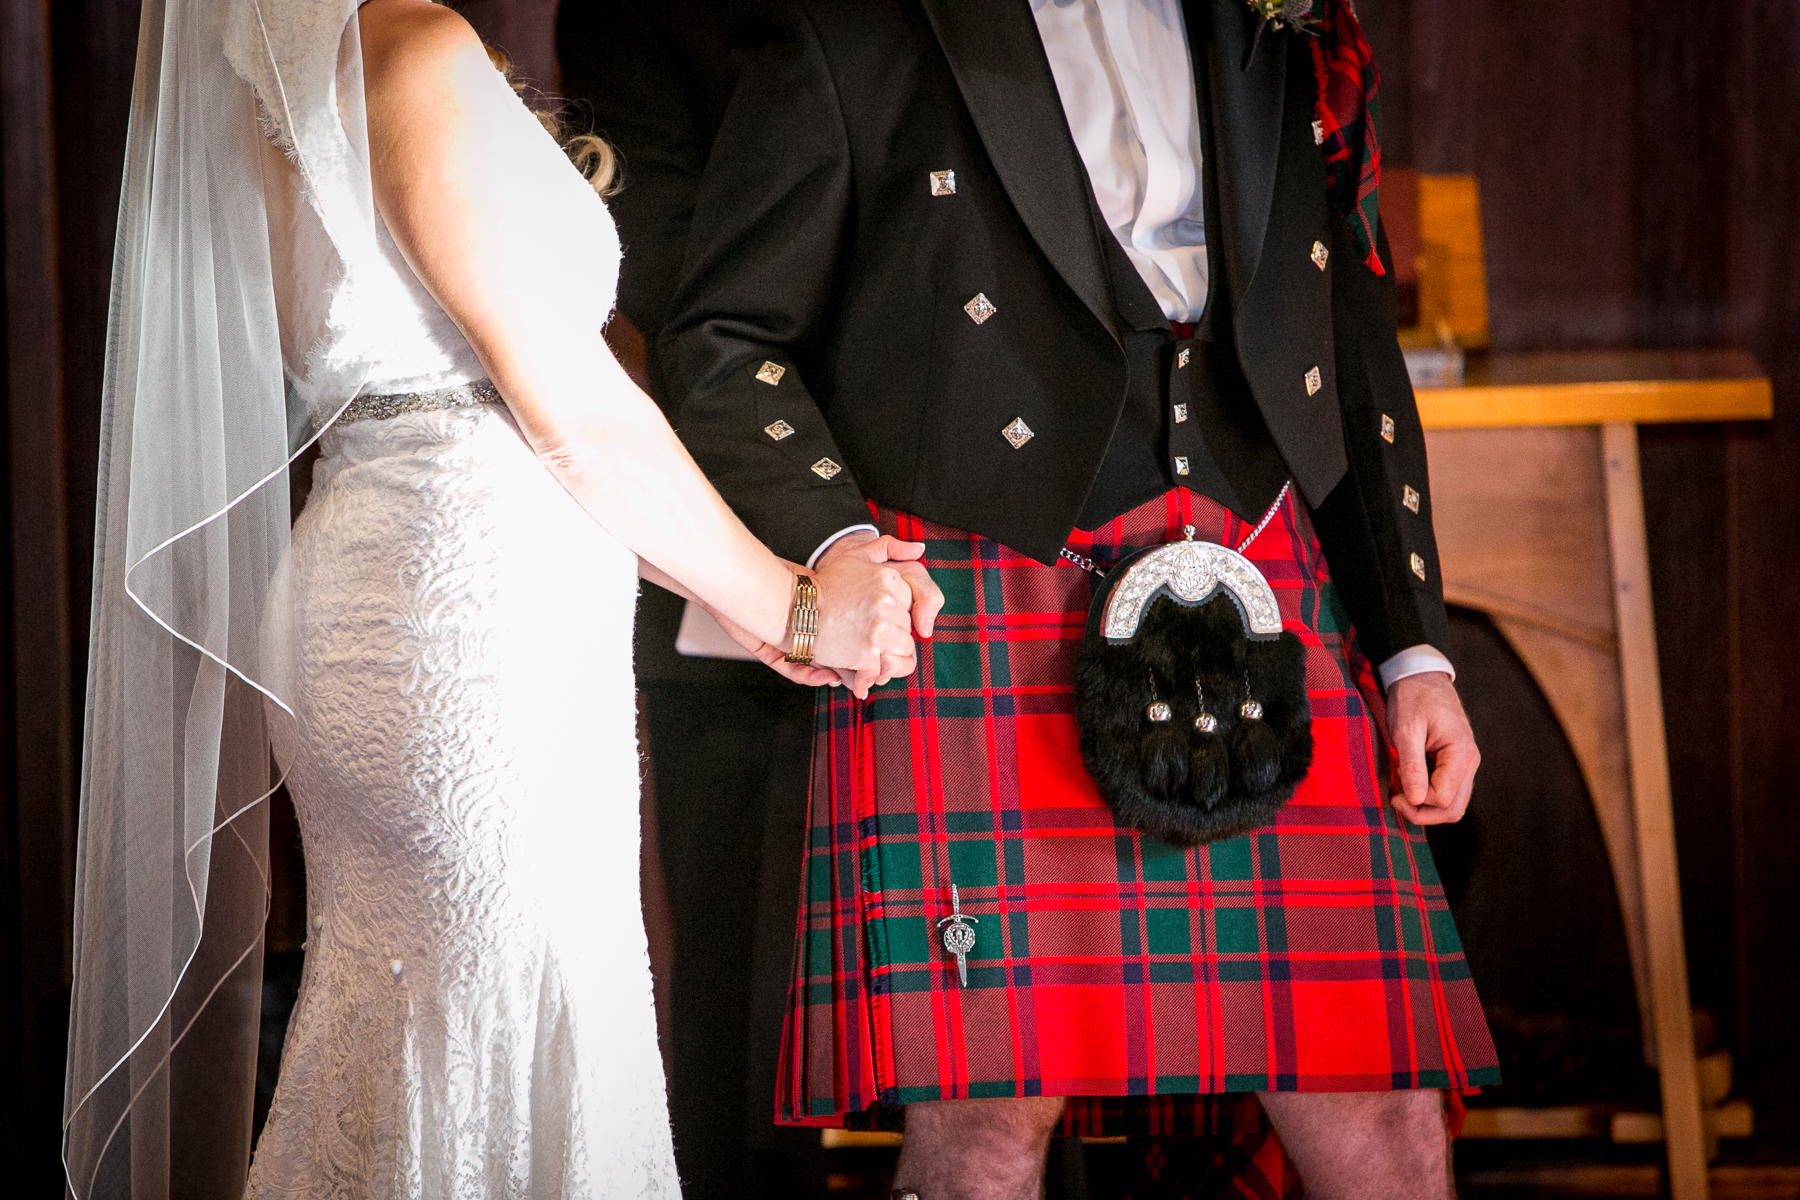 closeup of bride and groom wedding attire kilt during ceremony wedding at swedenborgian church photography